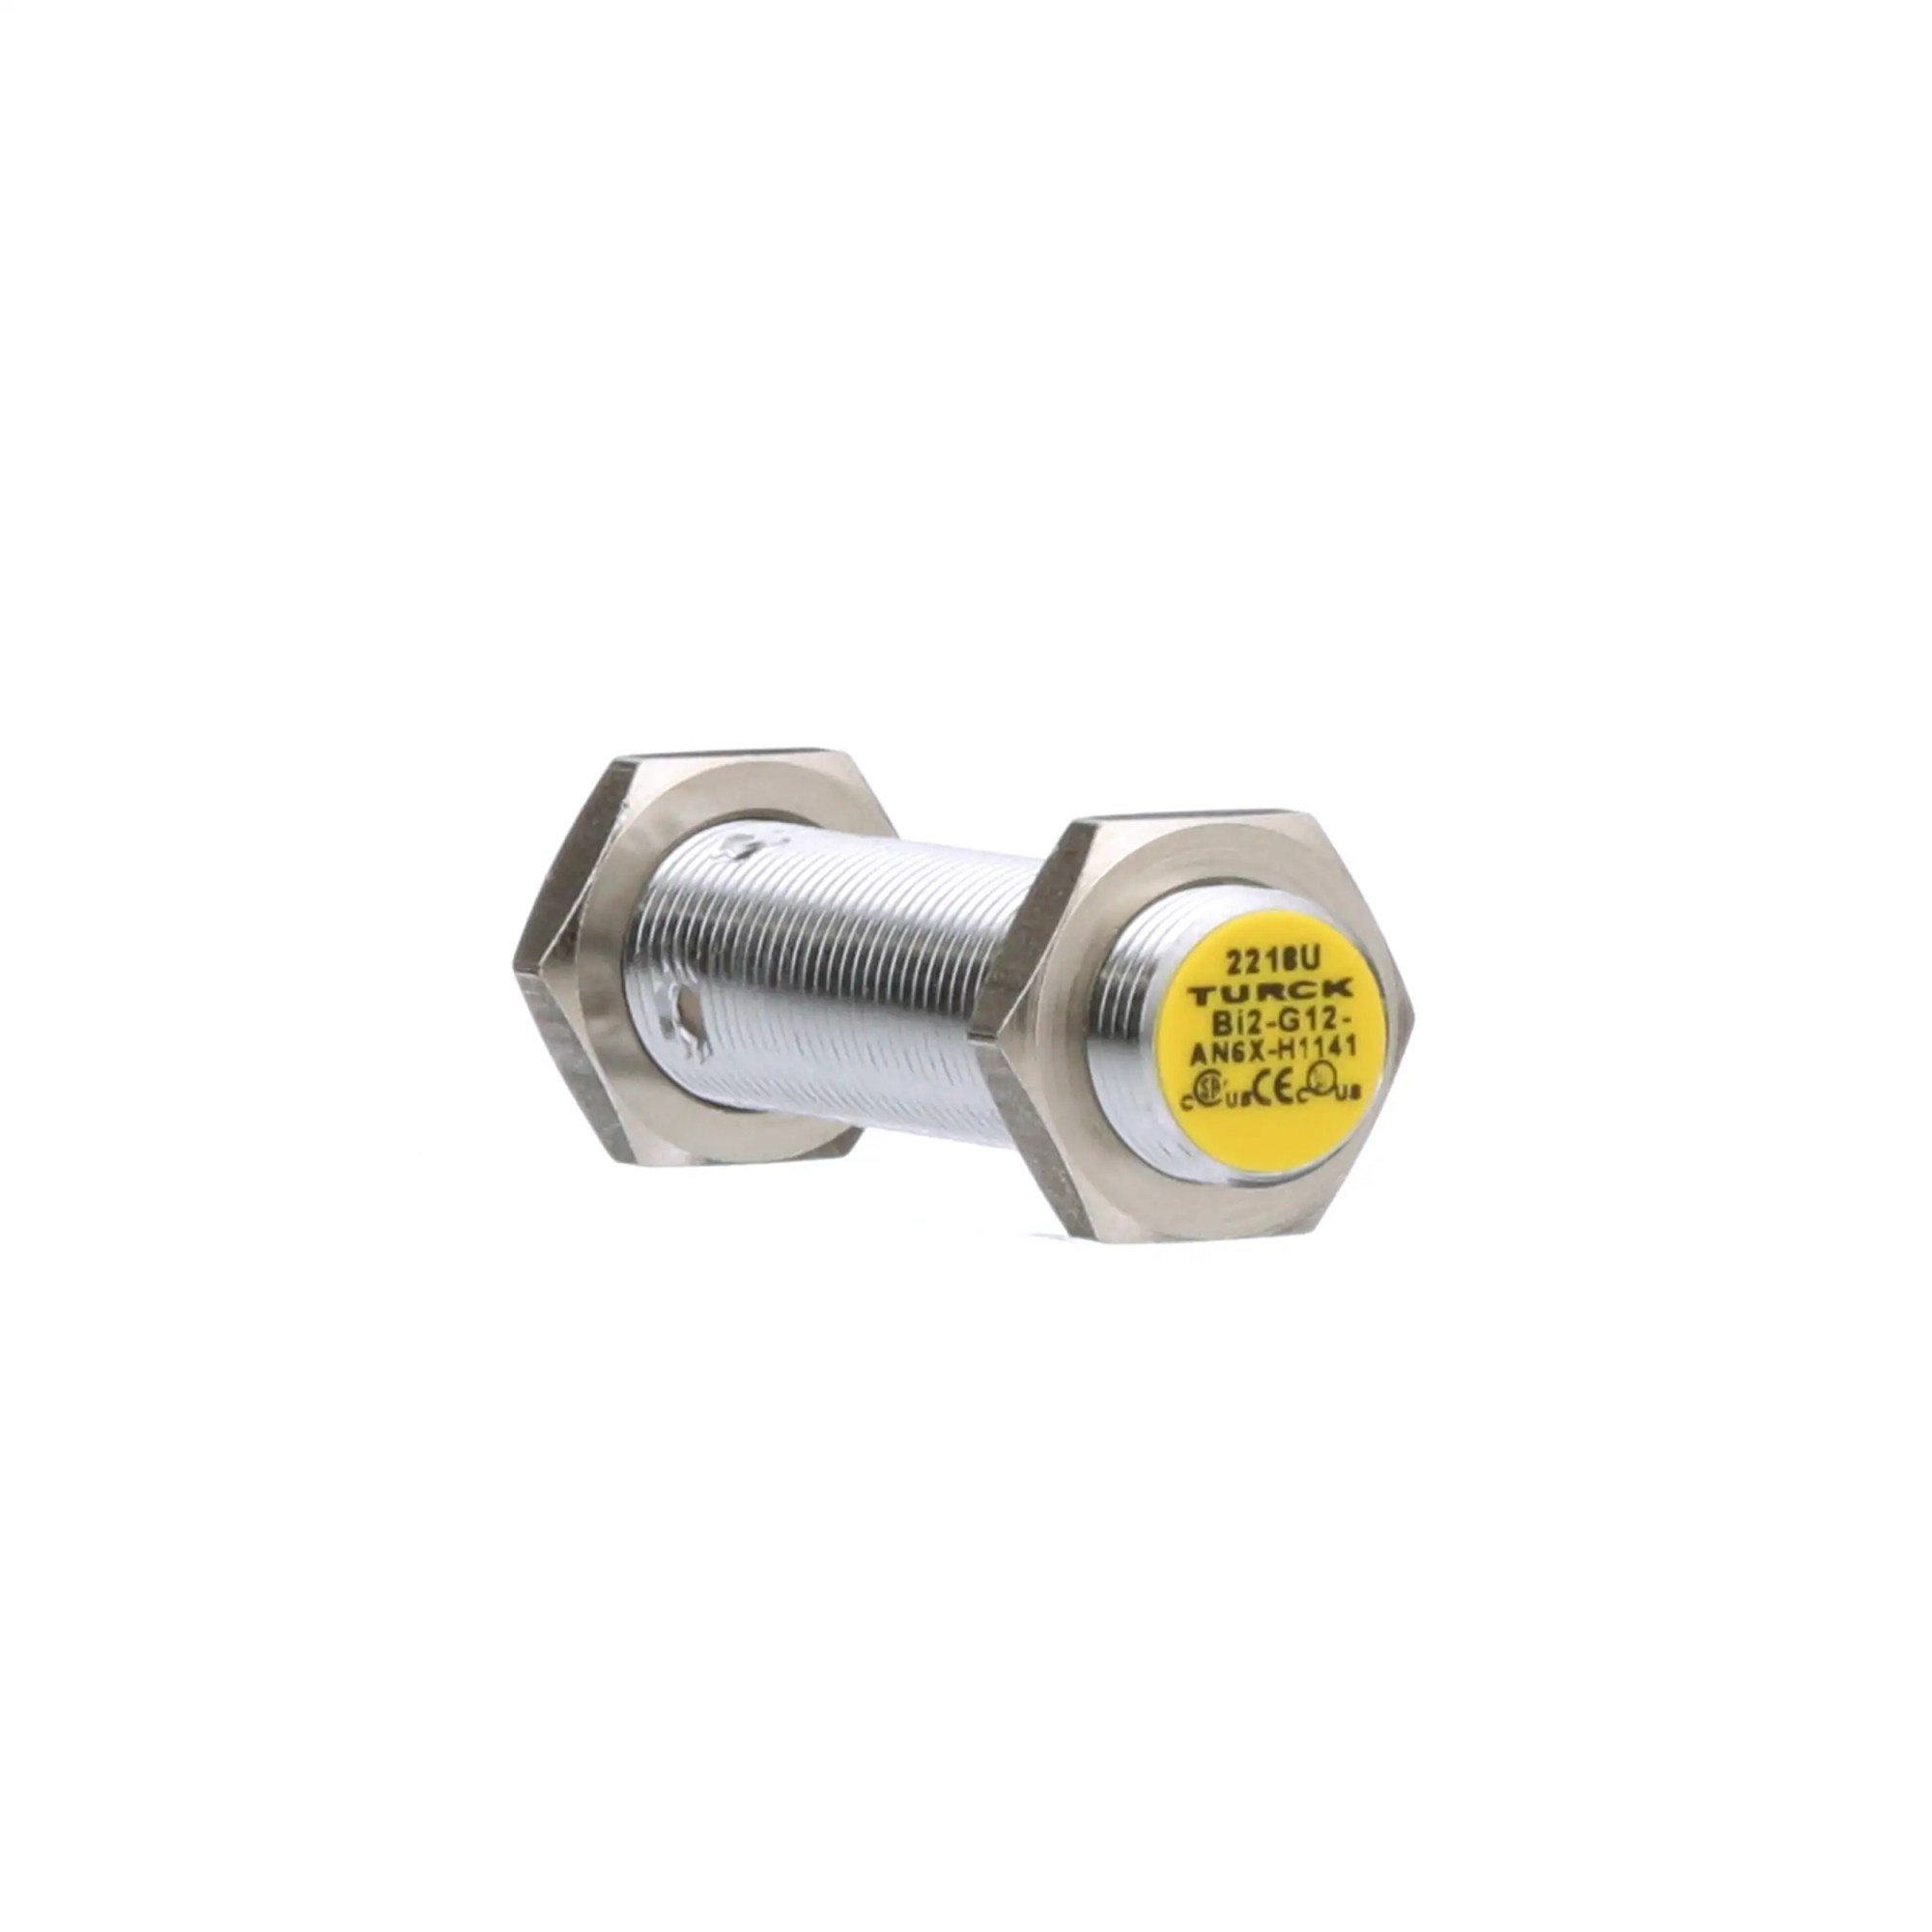 hight resolution of turck bi2 g12 an6x h1141 sensor inductive m12 x 1 10 to 30 vdc 200 ma max operating allied electronics automation